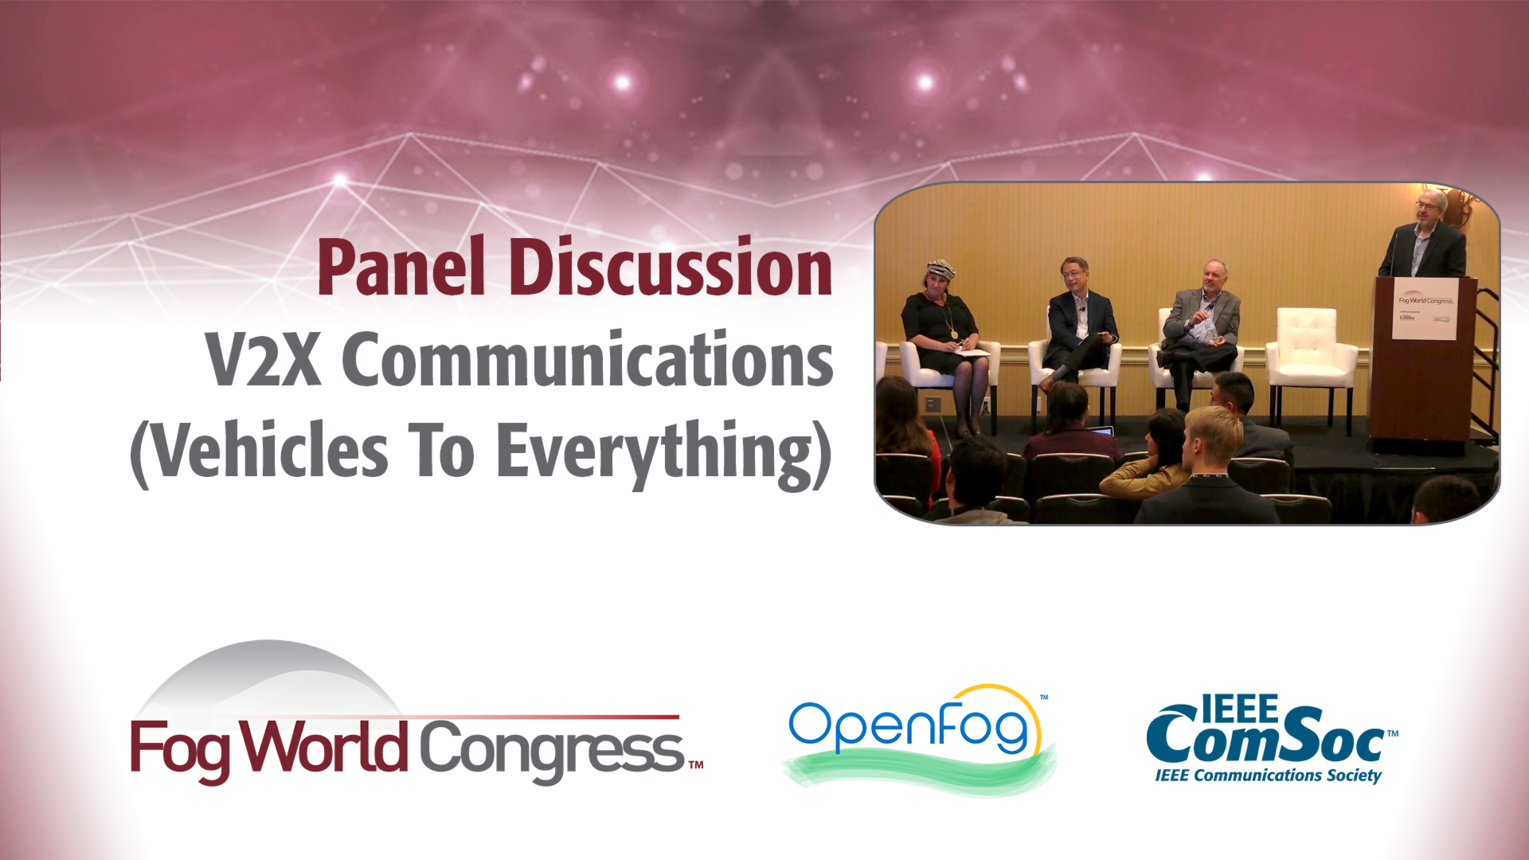 V2X: A Panel Discussion - Fog World Congress 2017